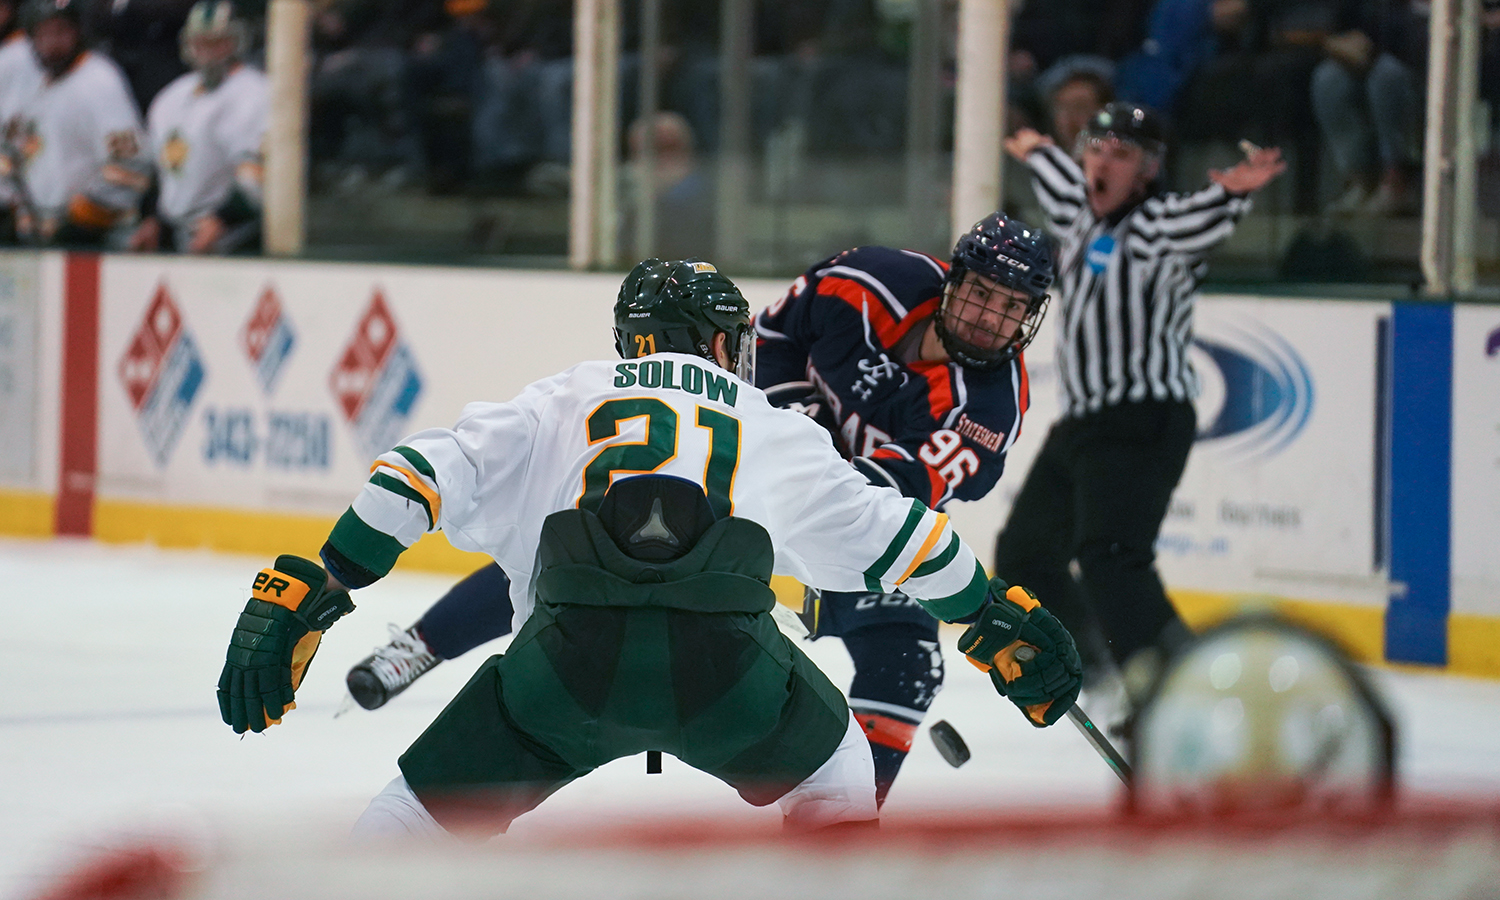 Hobart College at Oswego State Hockey2019 NCAA Quarterfinal Game